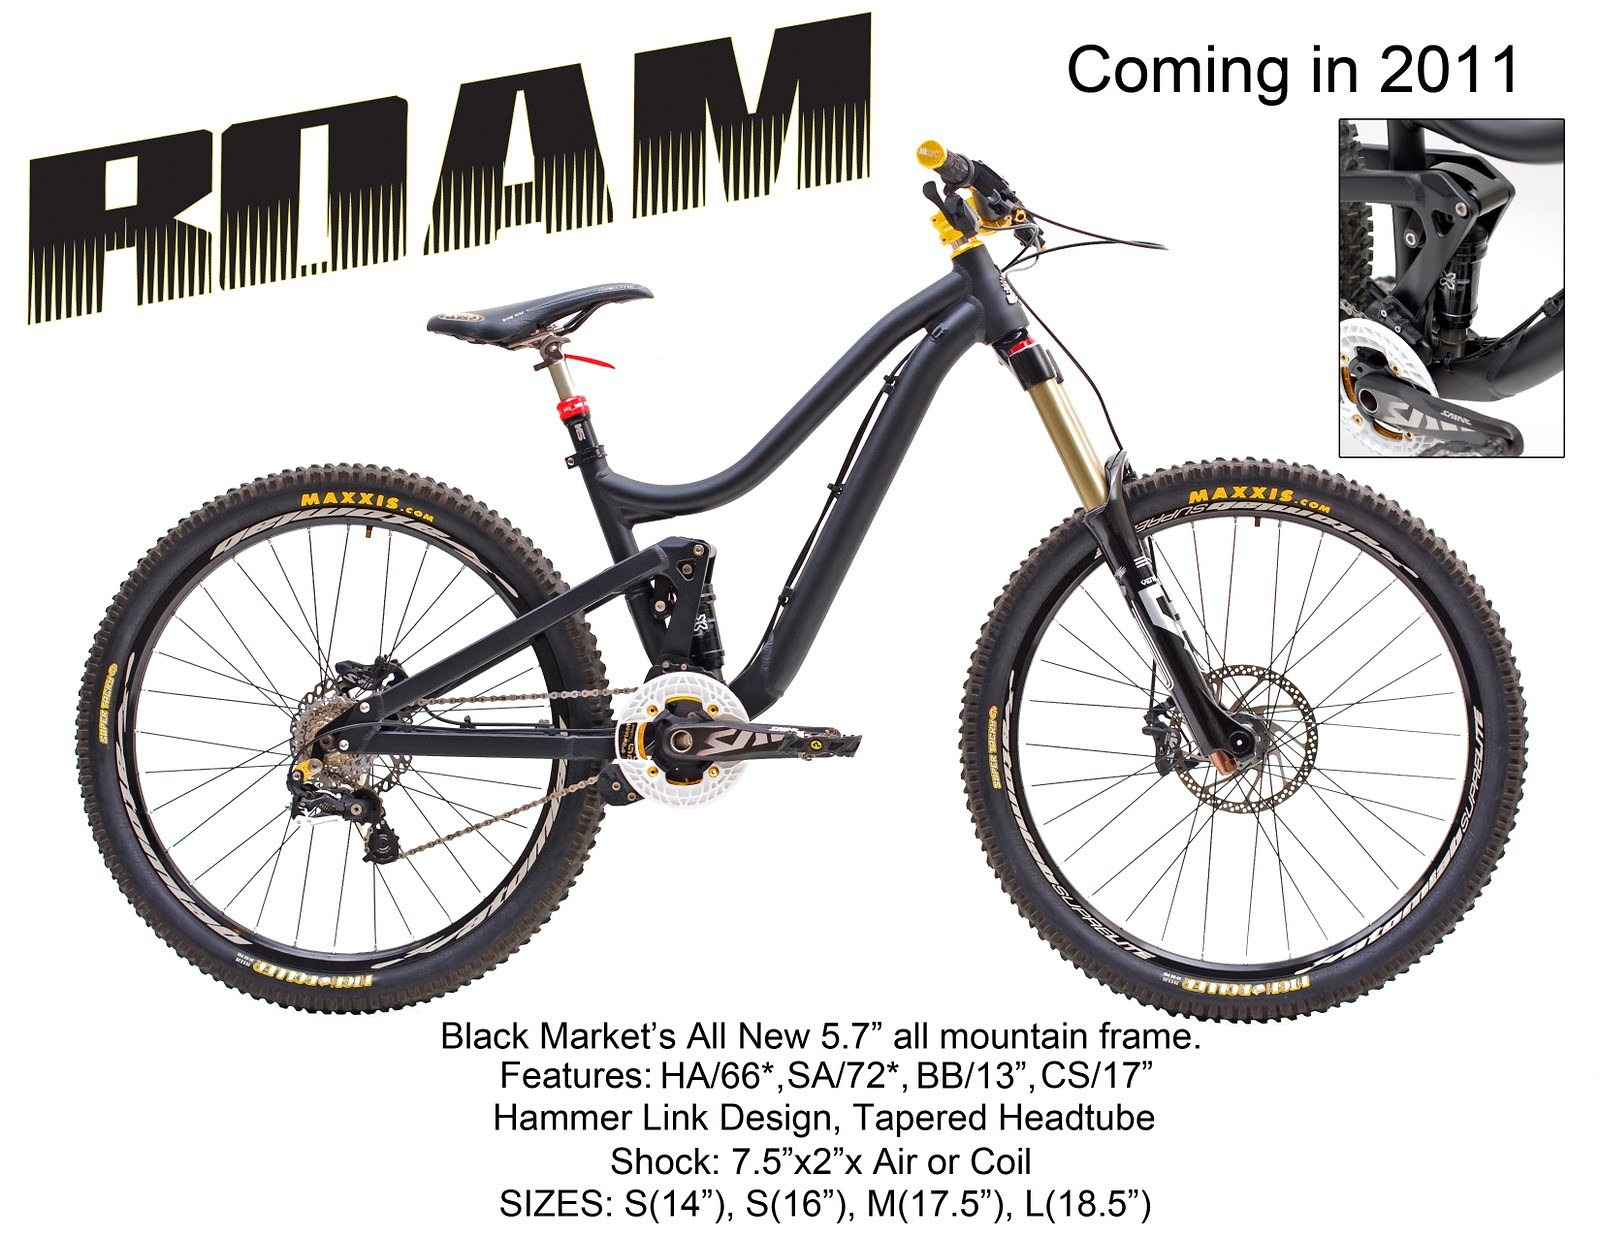 The Roam is Coming... - bturman - Mountain Biking Pictures - Vital MTB